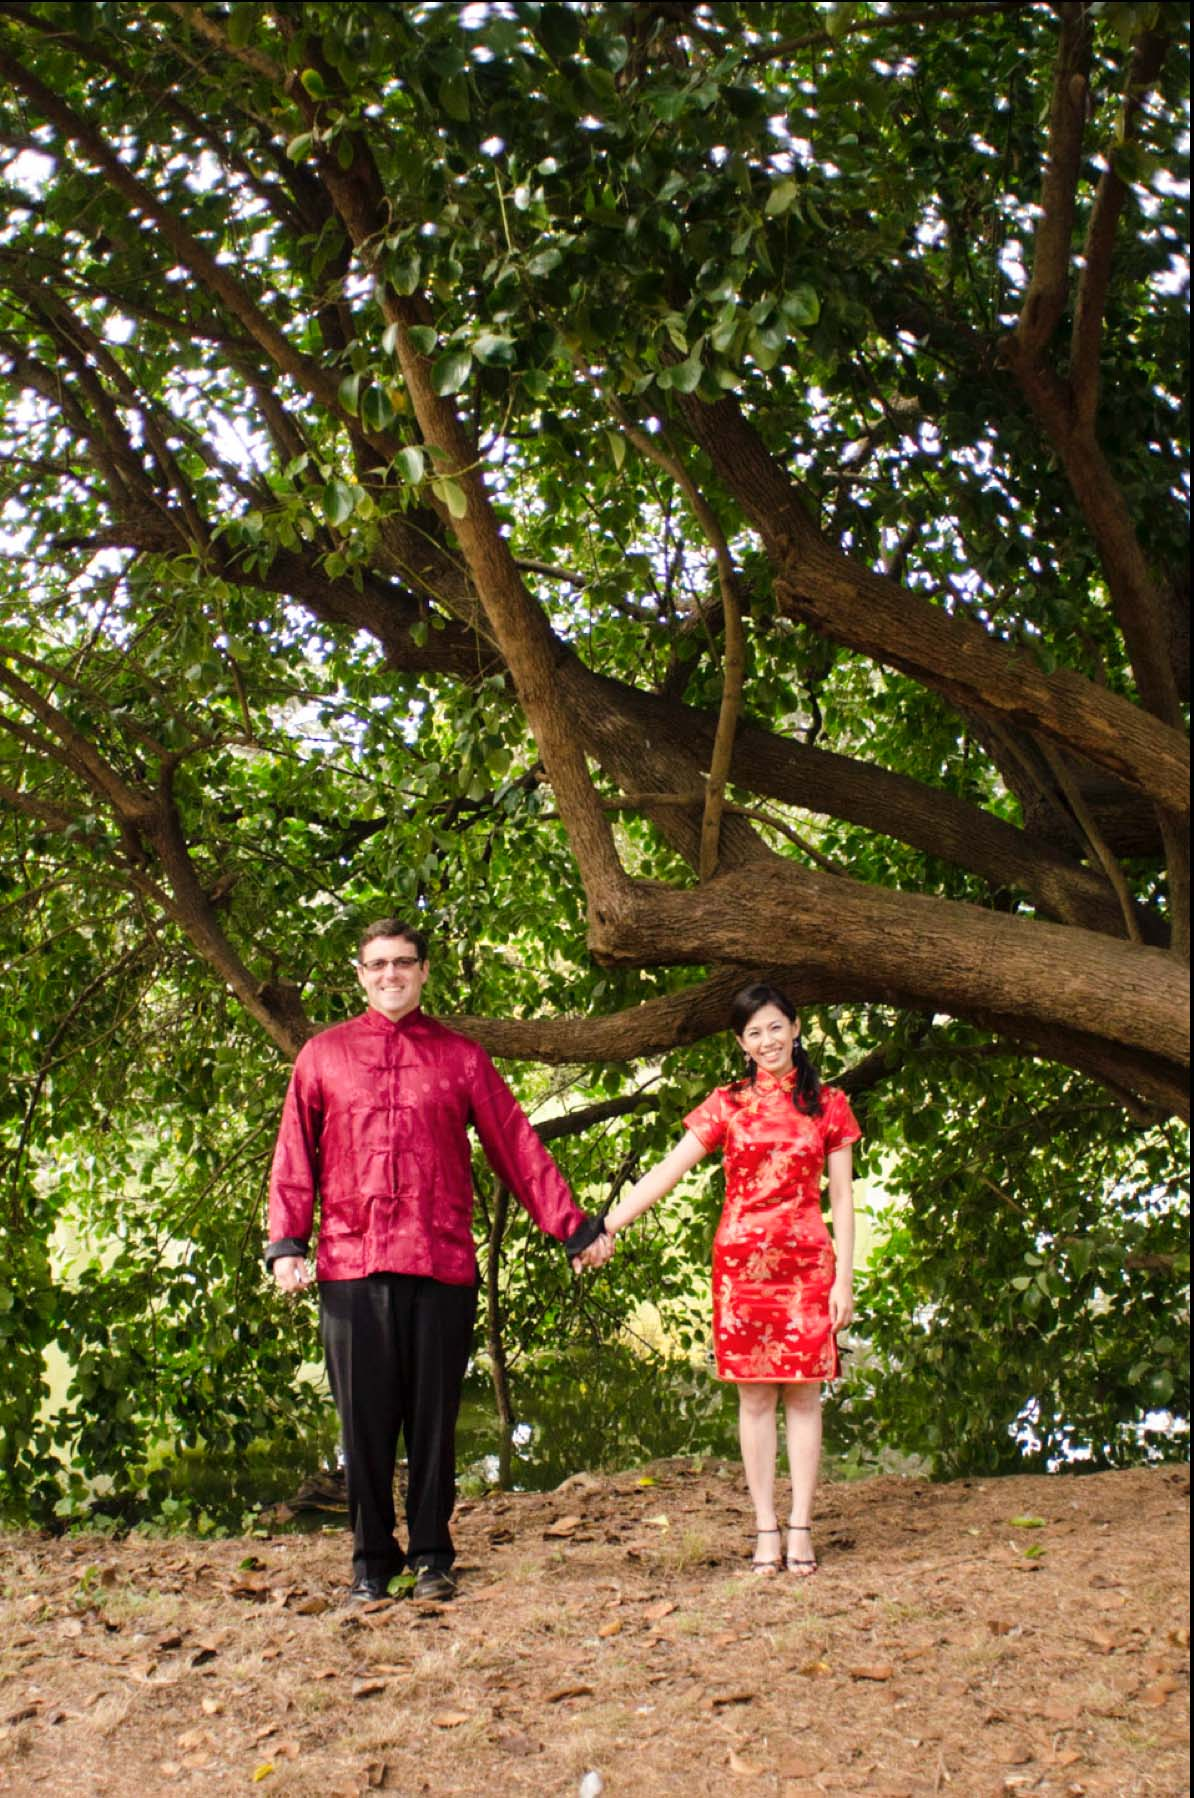 1_sanfrancisco_wedding_sirfrancisdrake copy.jpg